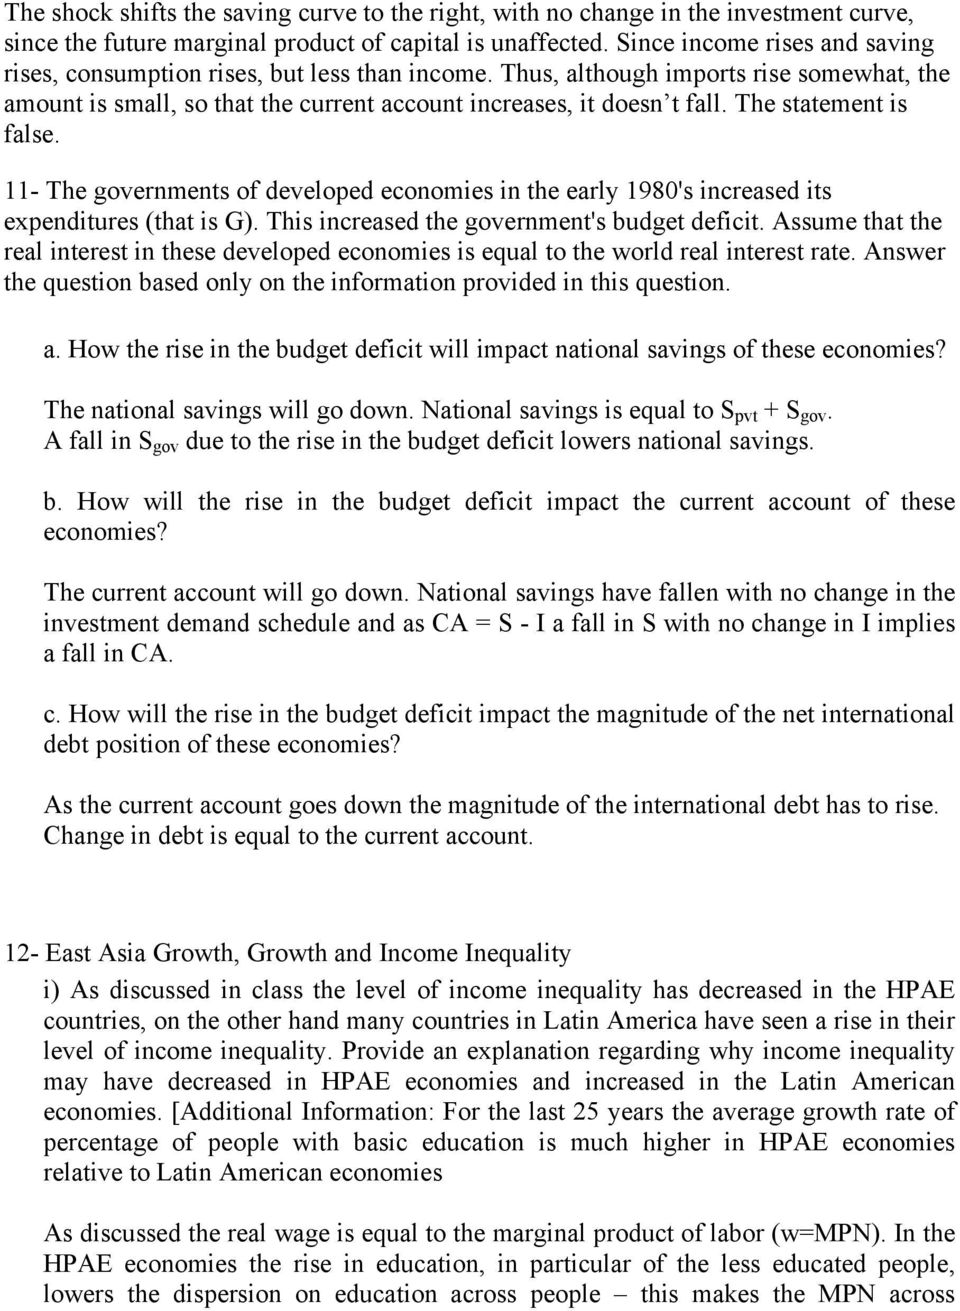 The statement is false. 11- The governments of developed economies in the early 1980's increased its expenditures (that is G). This increased the government's budget deficit.